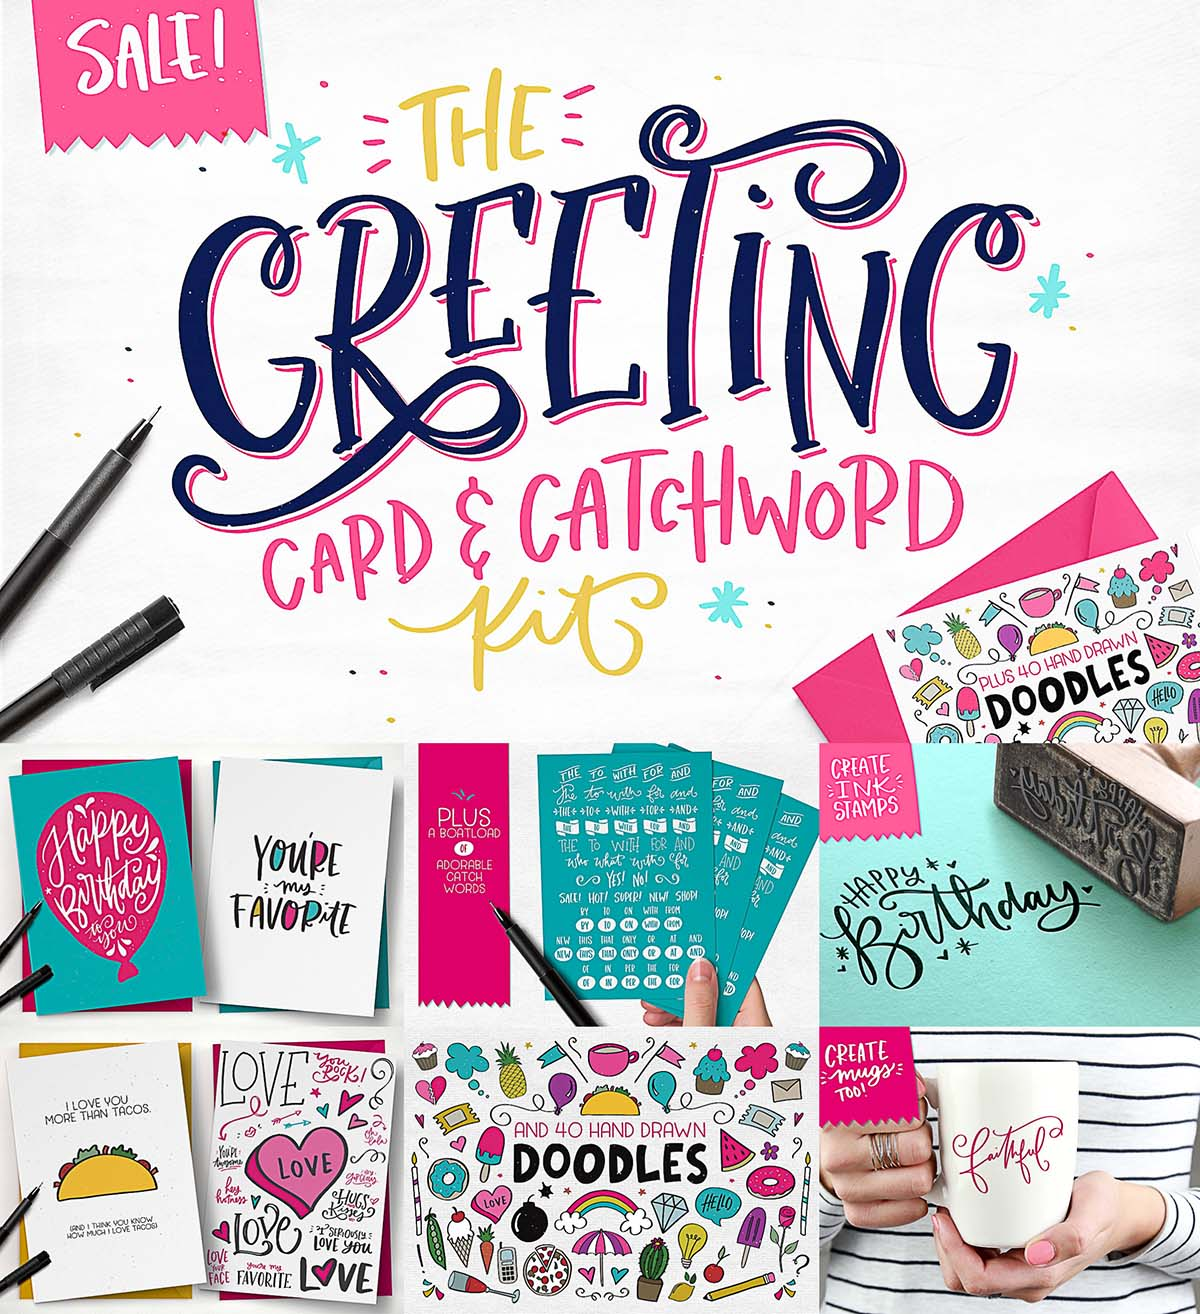 The greeting card and catchword bundle